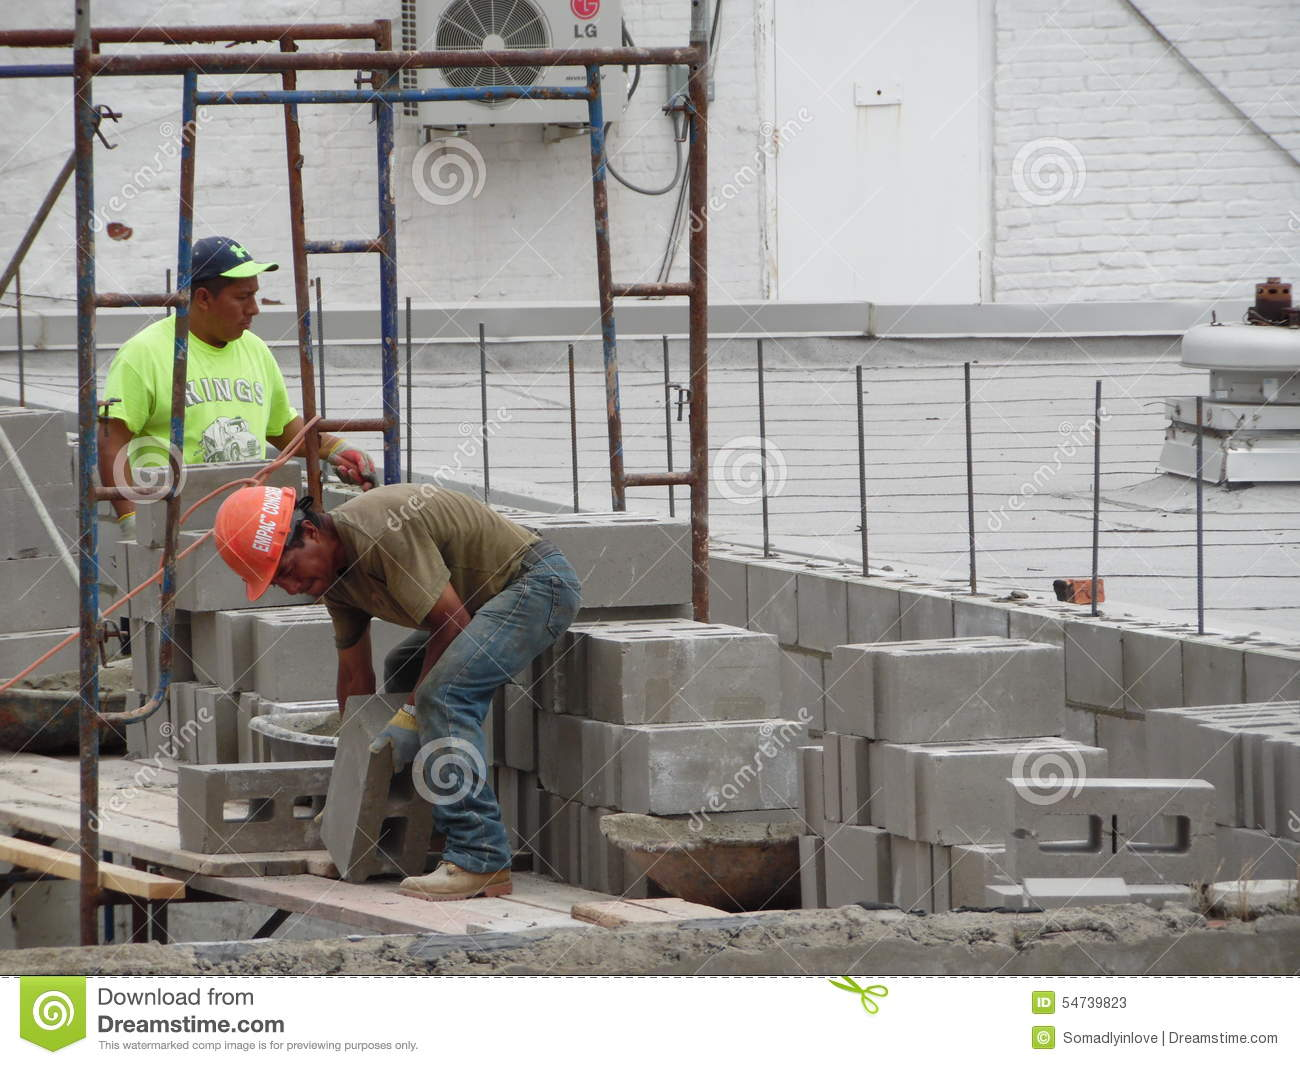 Photograph of Working Men Building Wall